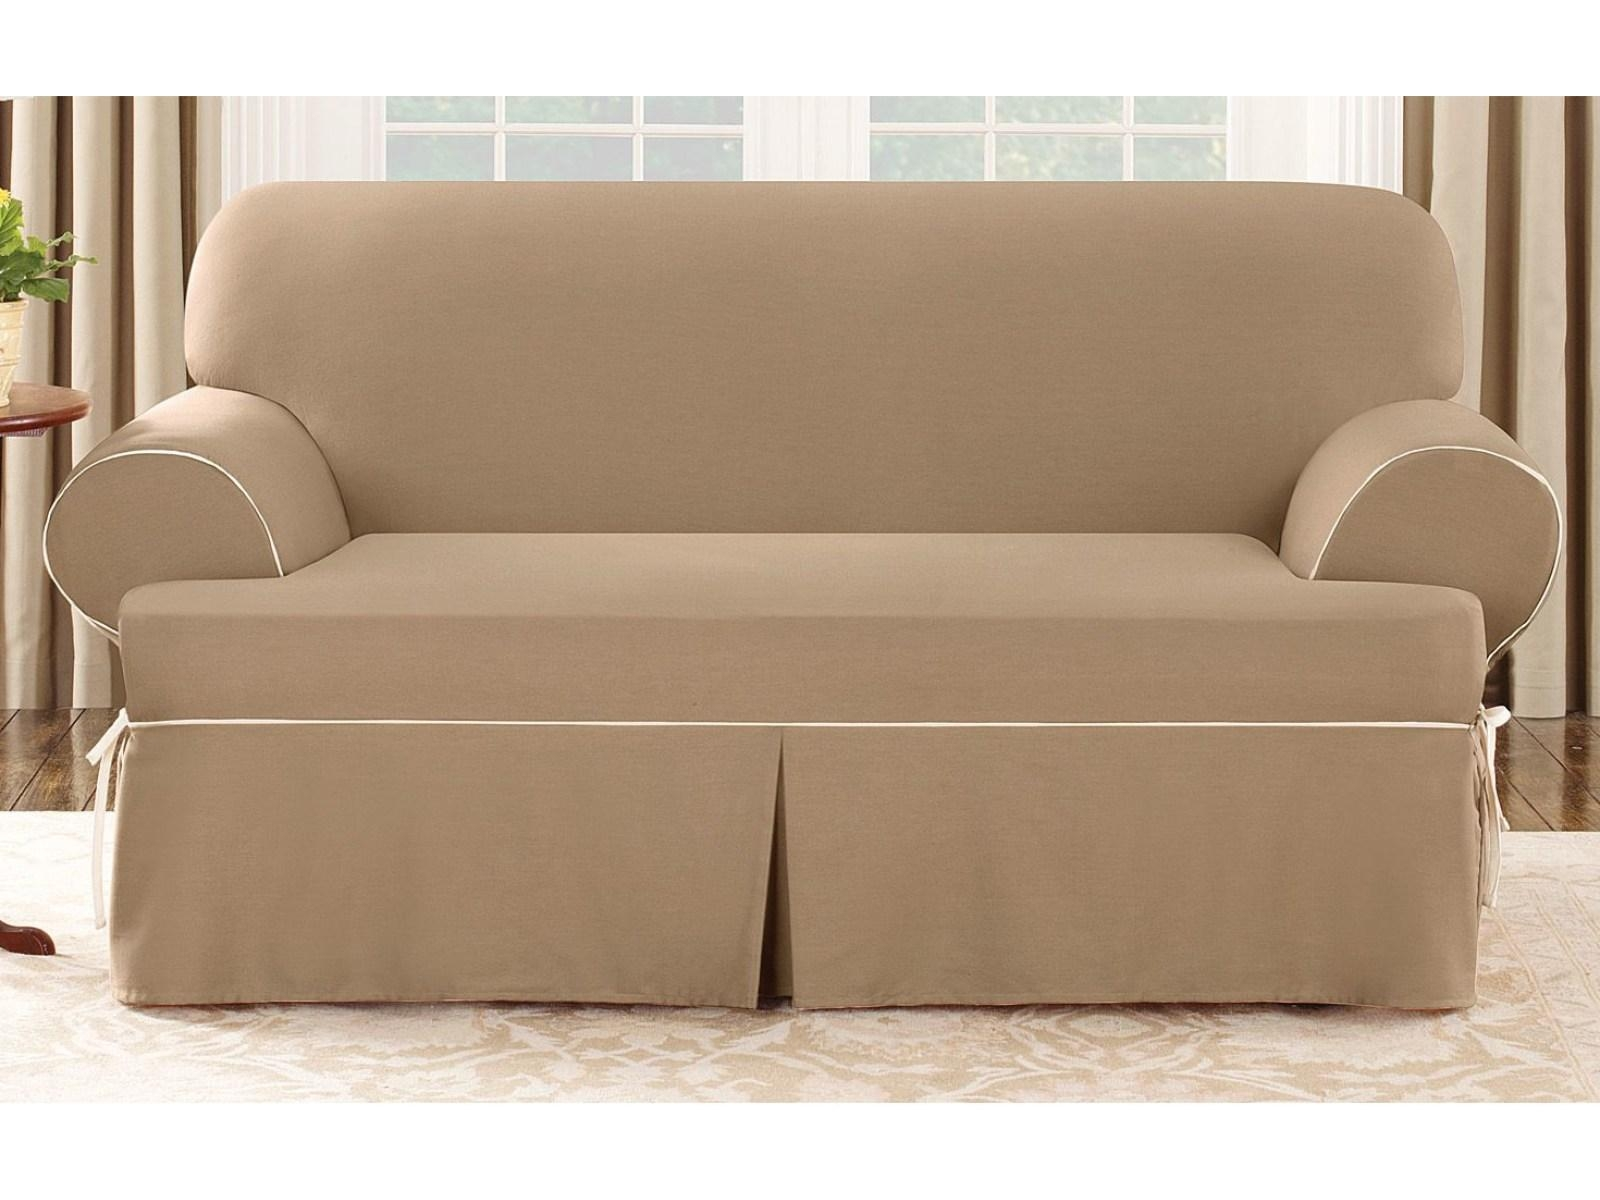 Sofas Center : Leather Reclining Sofa Coversreclining Covers Throughout Slipcover For Reclining Sofas (View 7 of 20)